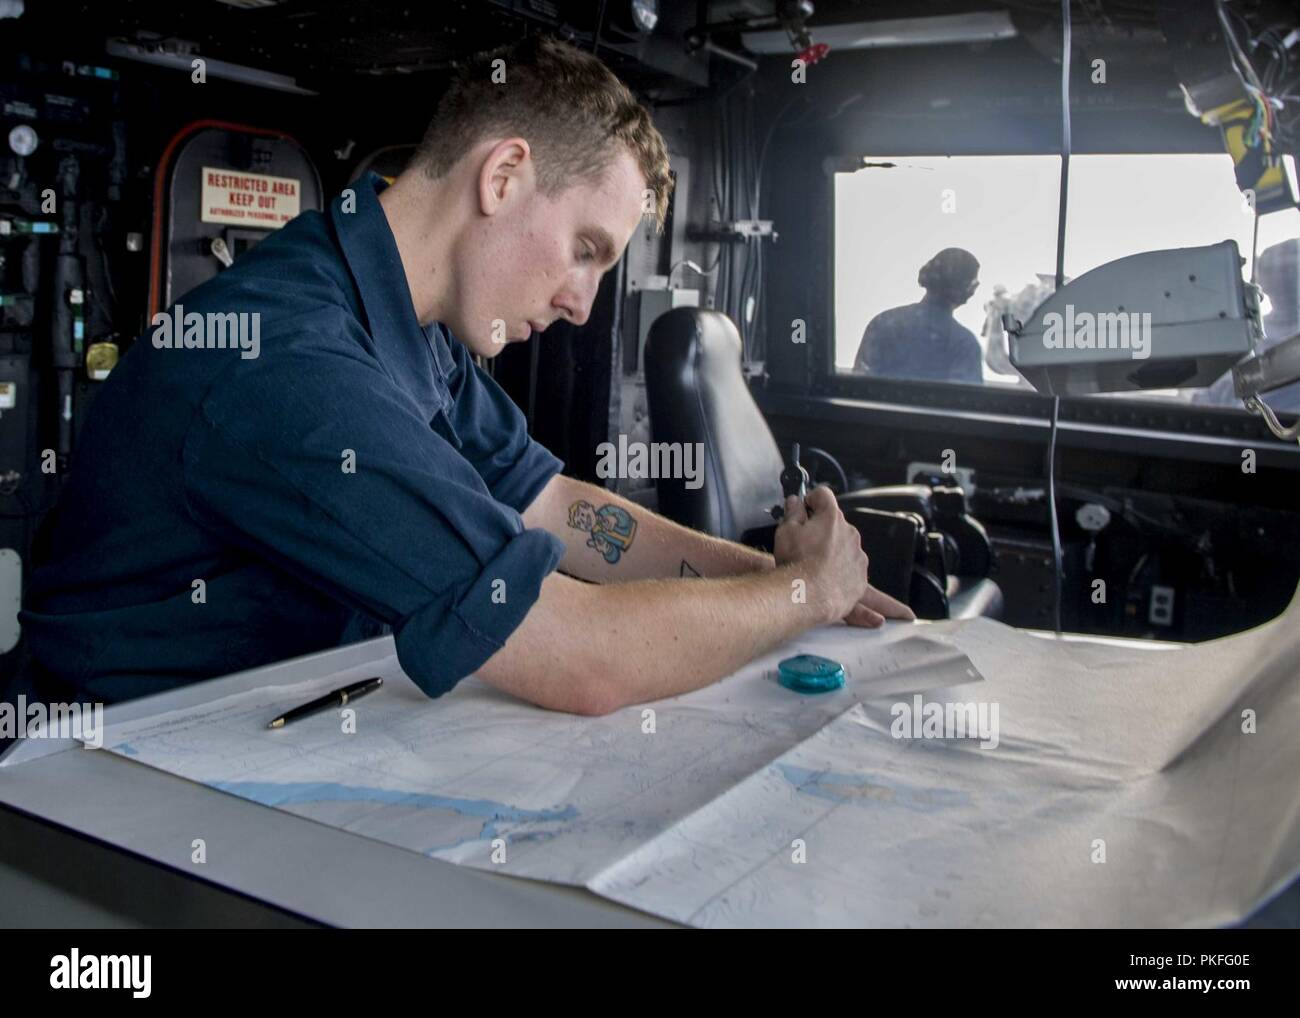 PACIFIC OCEAN (August 8, 2018) Quartermaster Seaman Keegan Taylor, from Houston, plots navigational charts in the pilot house of San Antonio-class amphibious transport dock USS Anchorage (LPD 23) during a regularly scheduled deployment of the Essex Amphibious Ready Group (ARG) and 13th Marine Expeditionary Unit (MEU). The Essex ARG/MEU team is a strong and flexible force equipped and scalable to respond to any crisis ranging from humanitarian assistance and disaster relief to contingency operations. - Stock Image